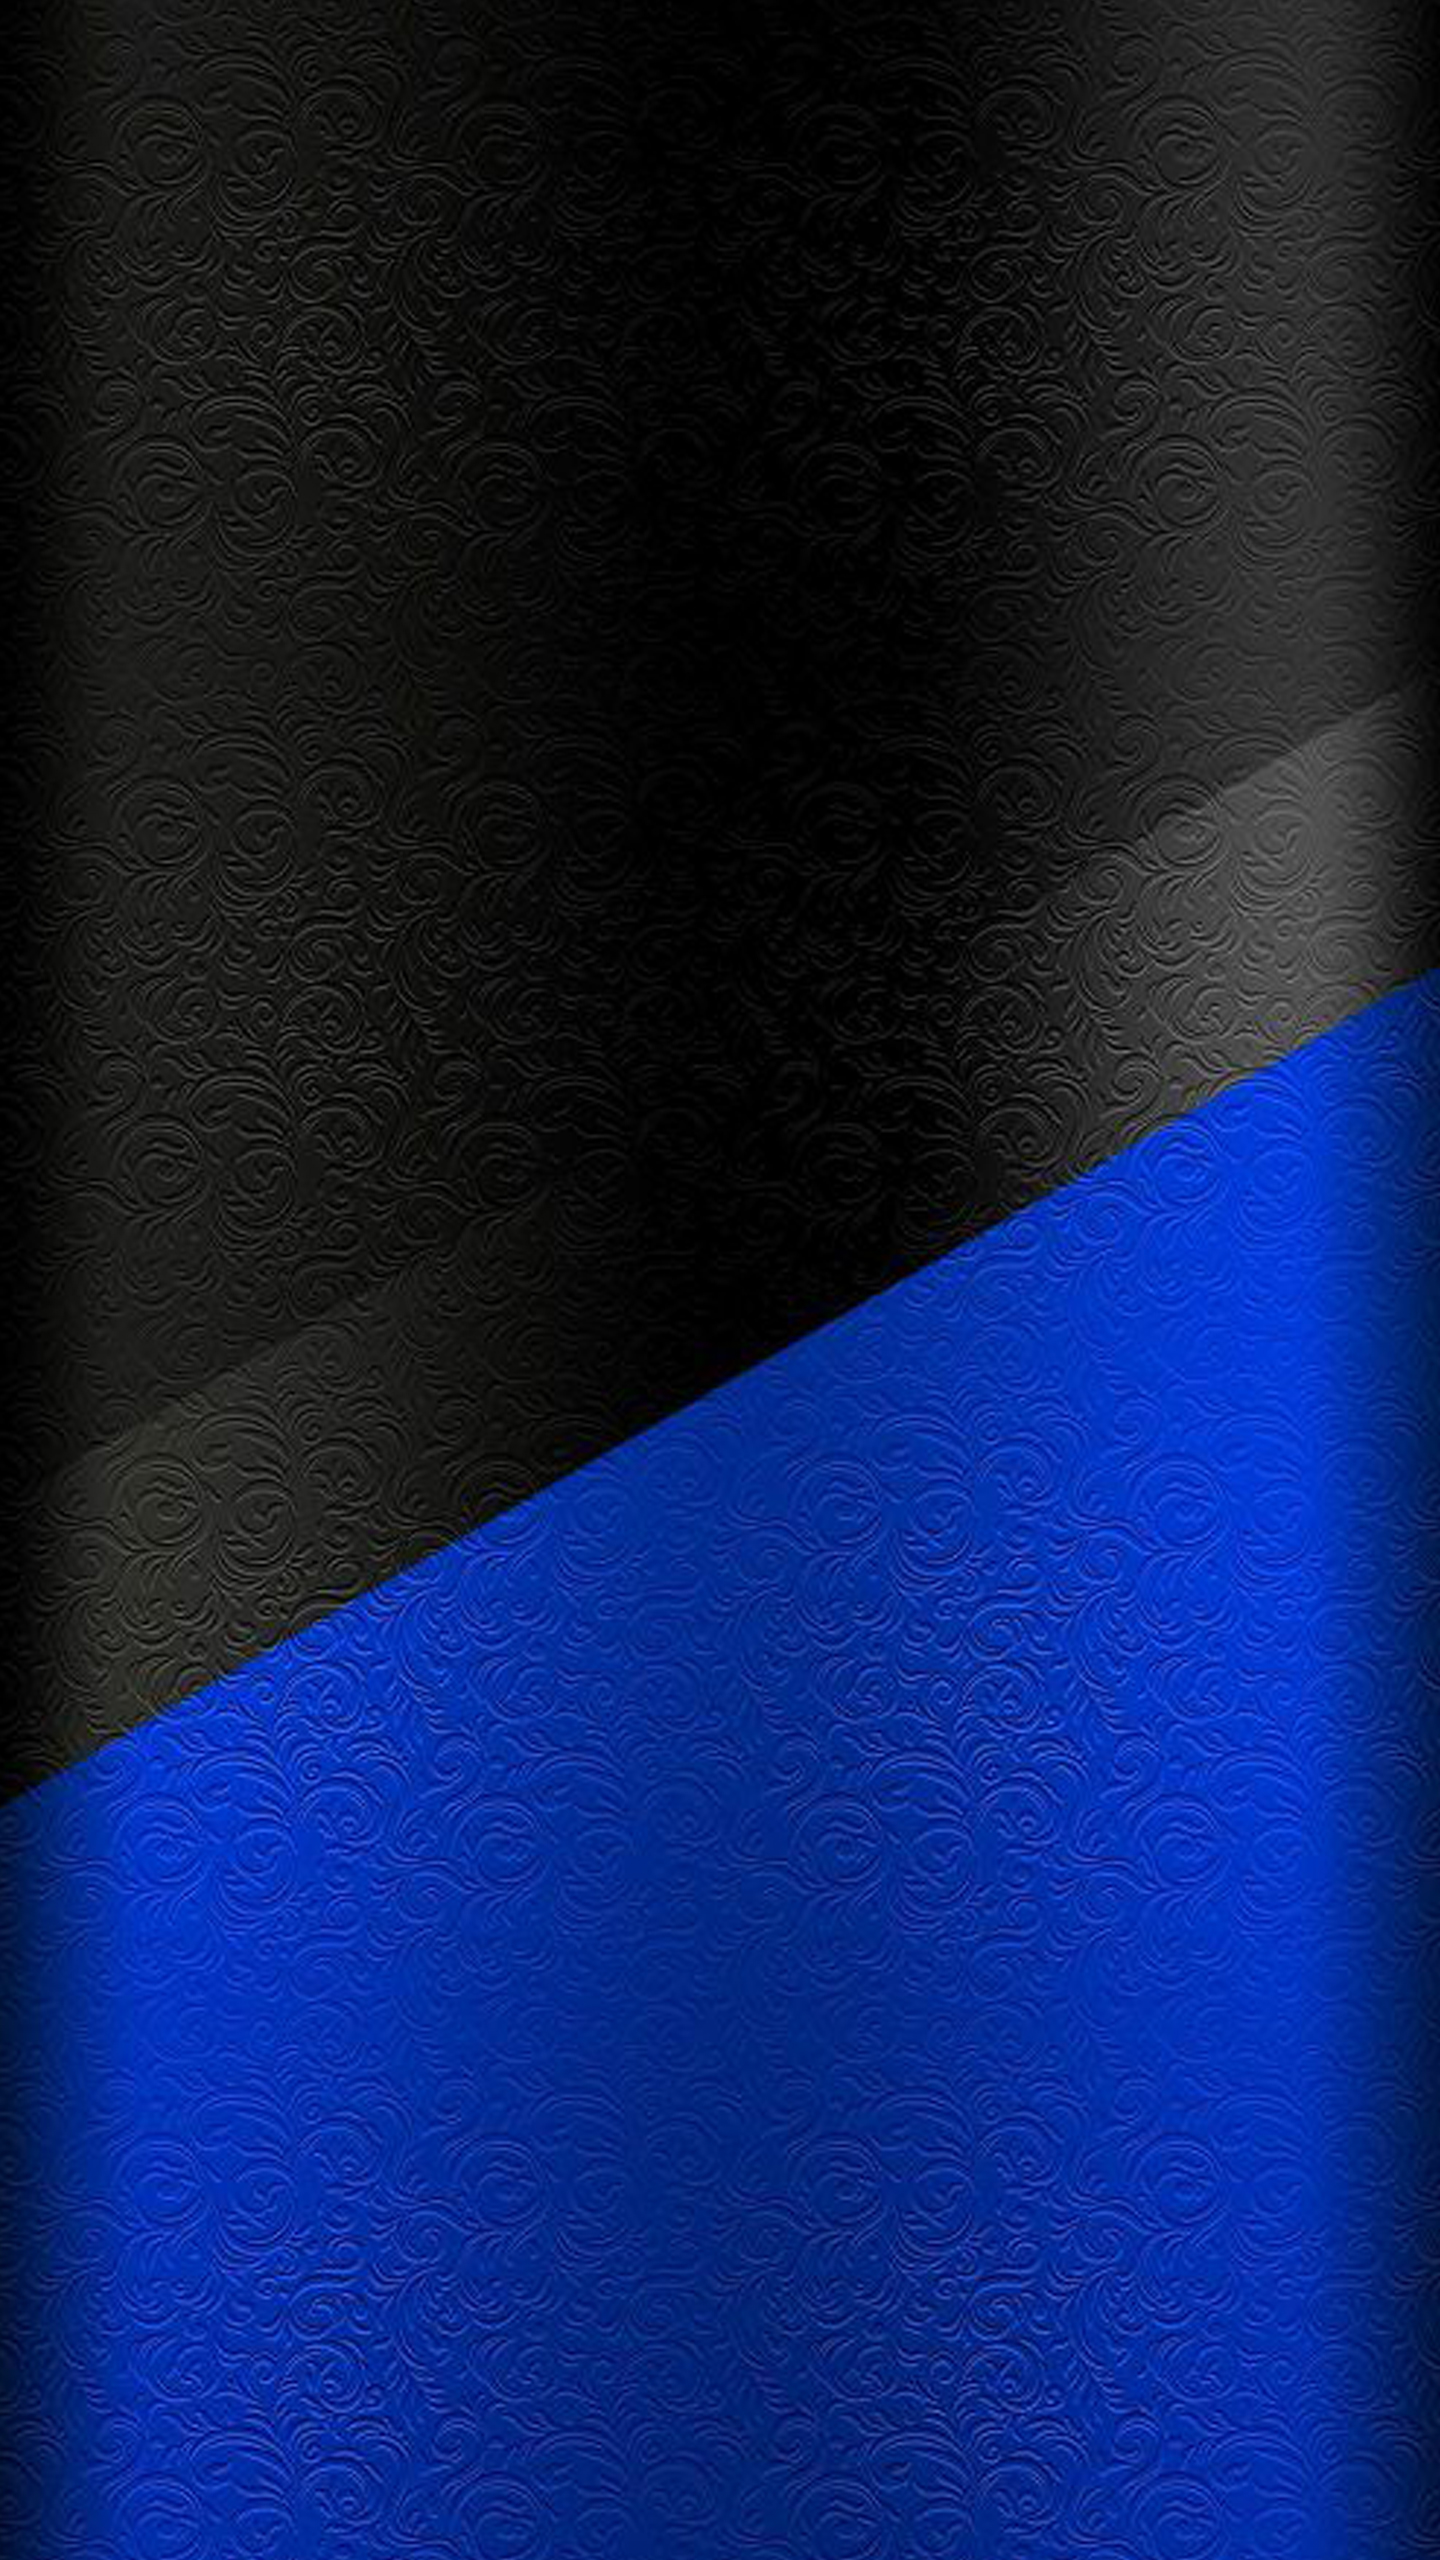 Dark S7 Edge Wallpaper 01 Black And Blue Floral Pattern Hd Wallpapers Wallpapers Download High Resolution Wallpapers